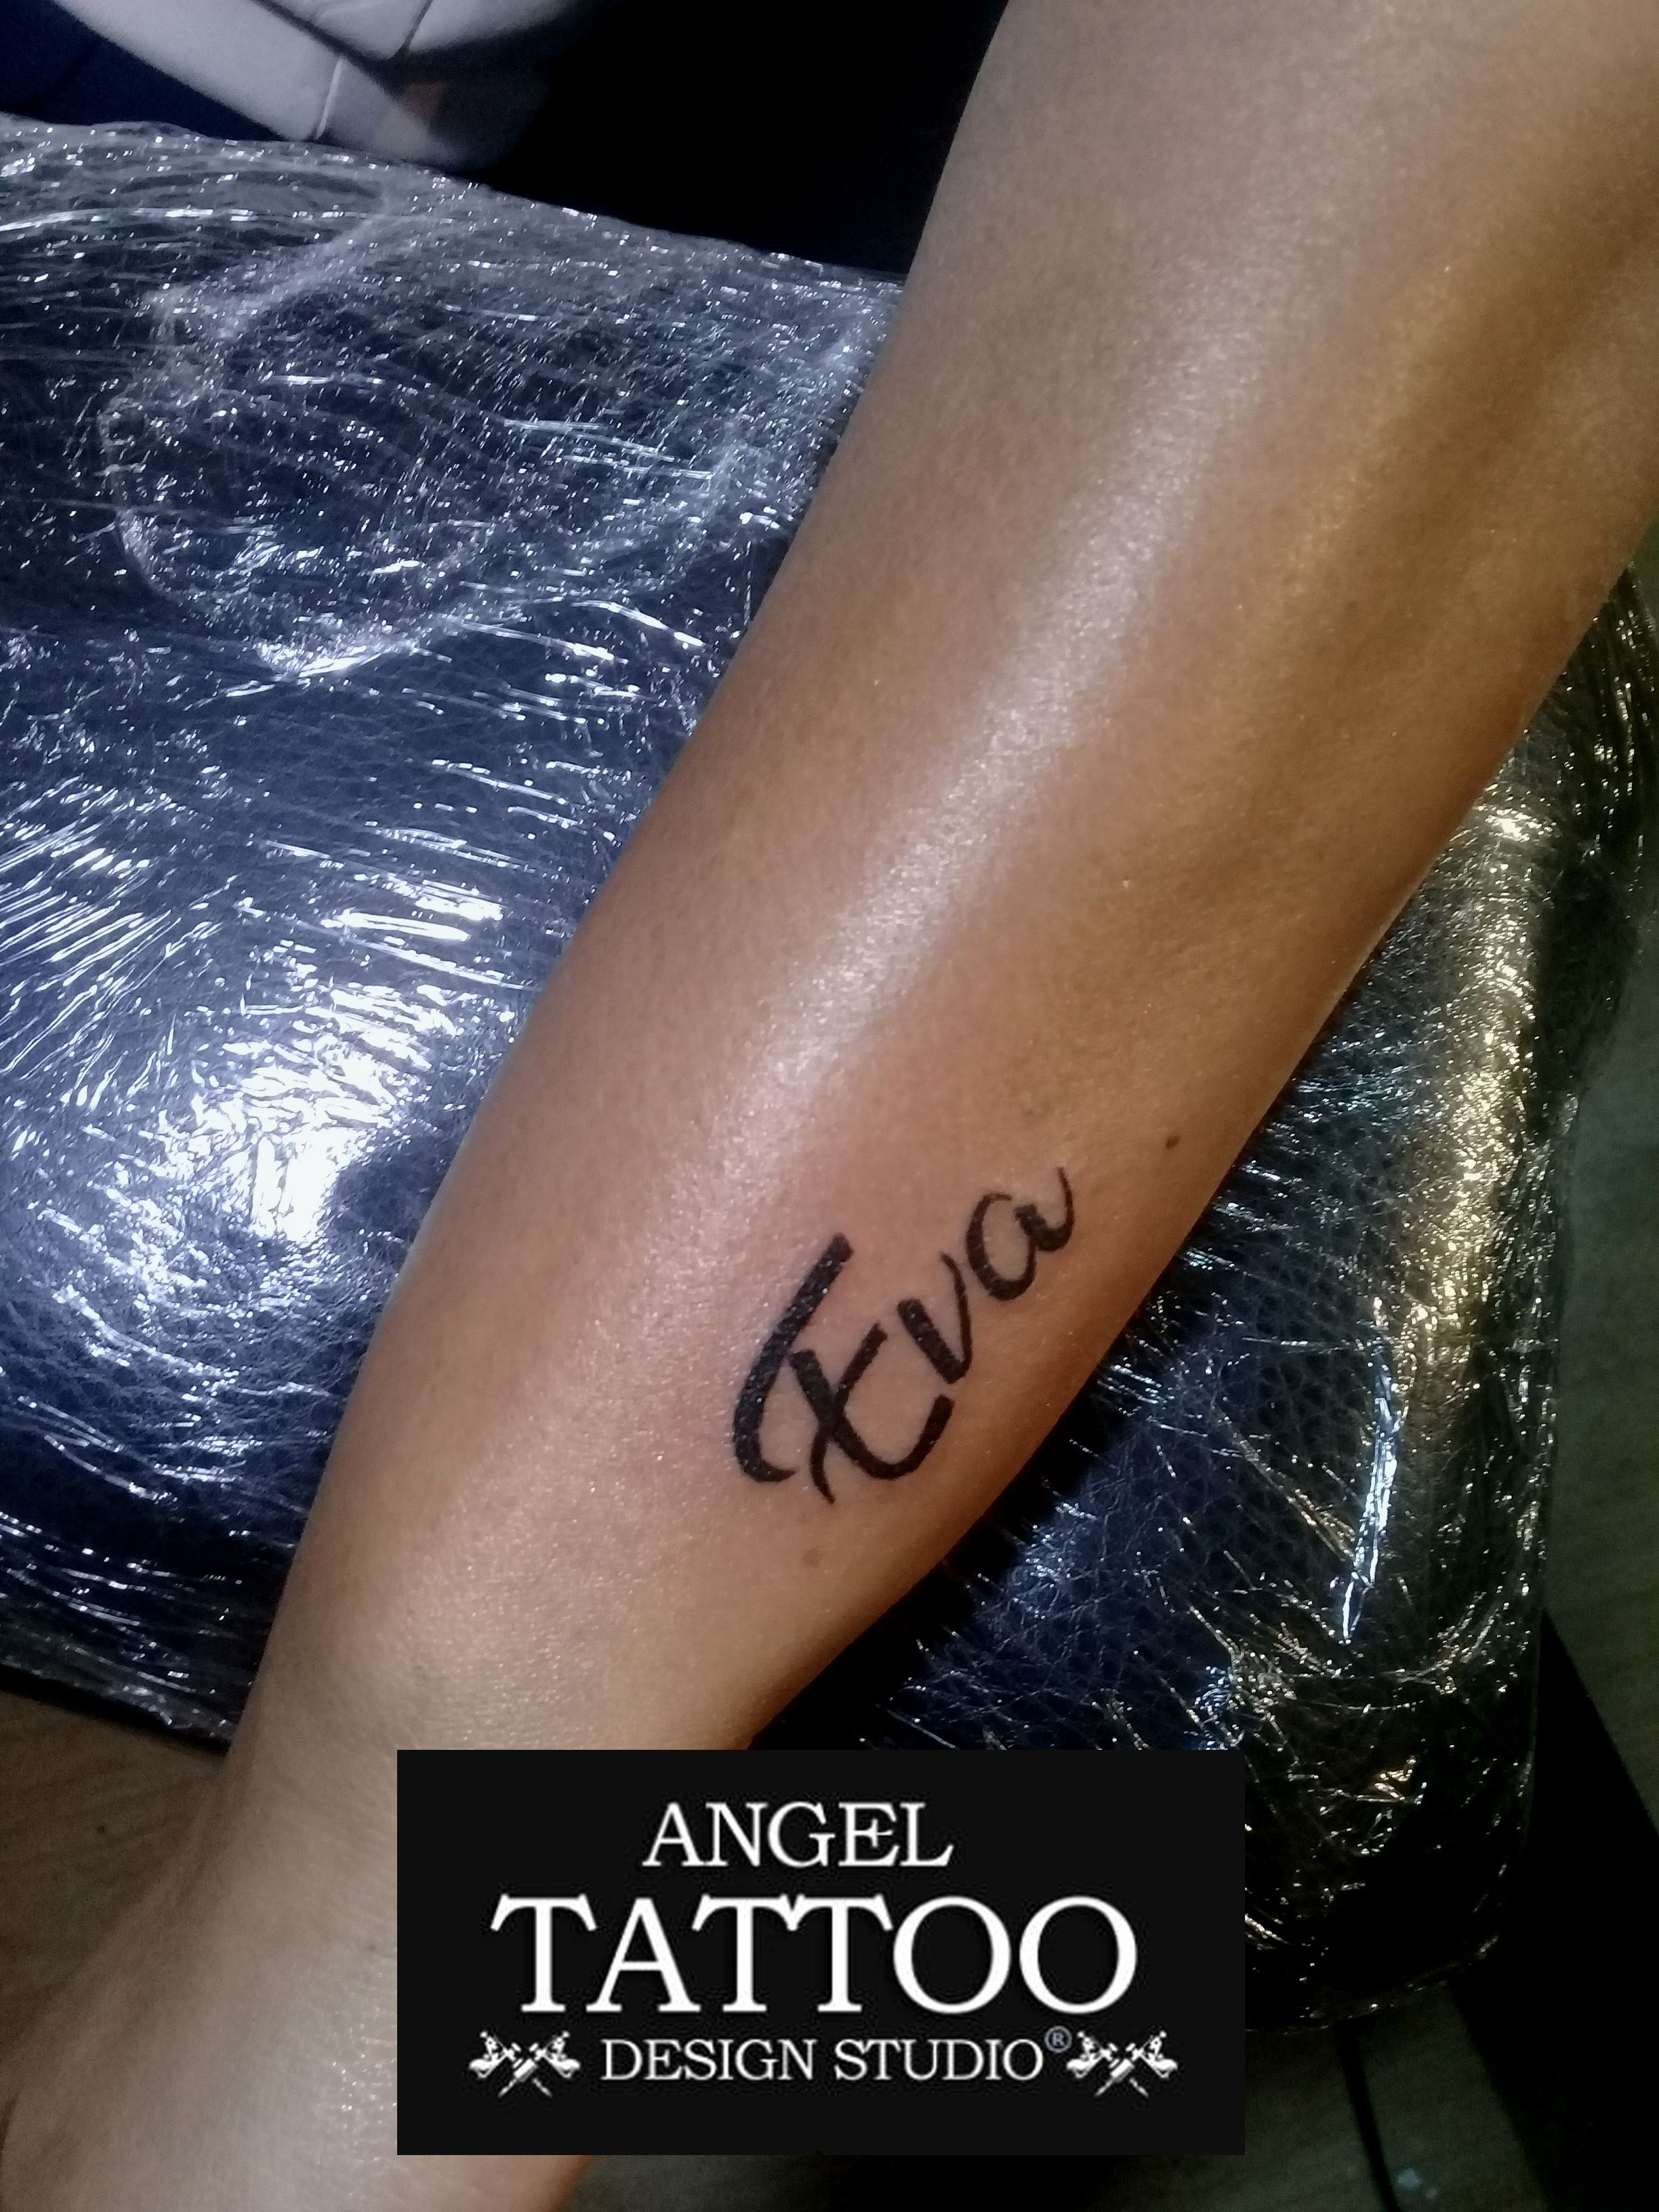 0392d3ff91813 Eva name tattoo made at Gurgaon center. Call 8826602967 for appointment # nametattoo #evanametattoo #smalltattoos